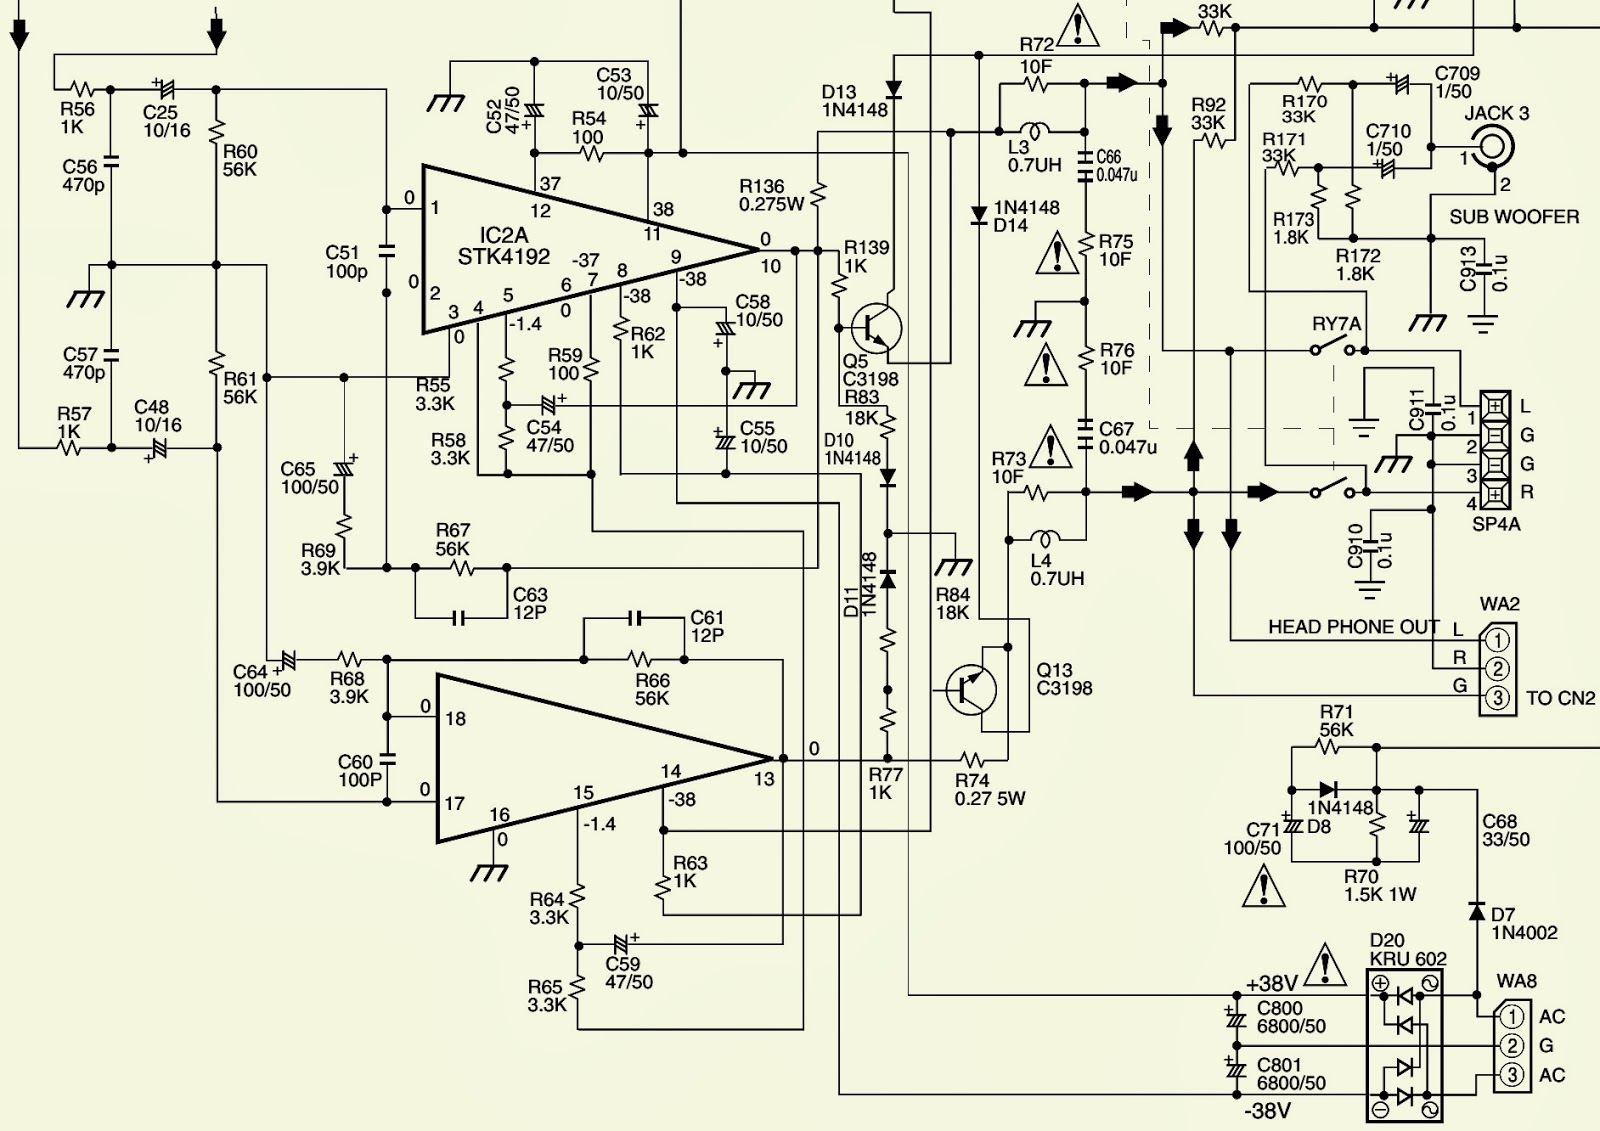 Jbl Jsr 400 Power Amp Schematic Stk 4192 Electro Help 38v Wiring Diagram Click On The To Zoom In